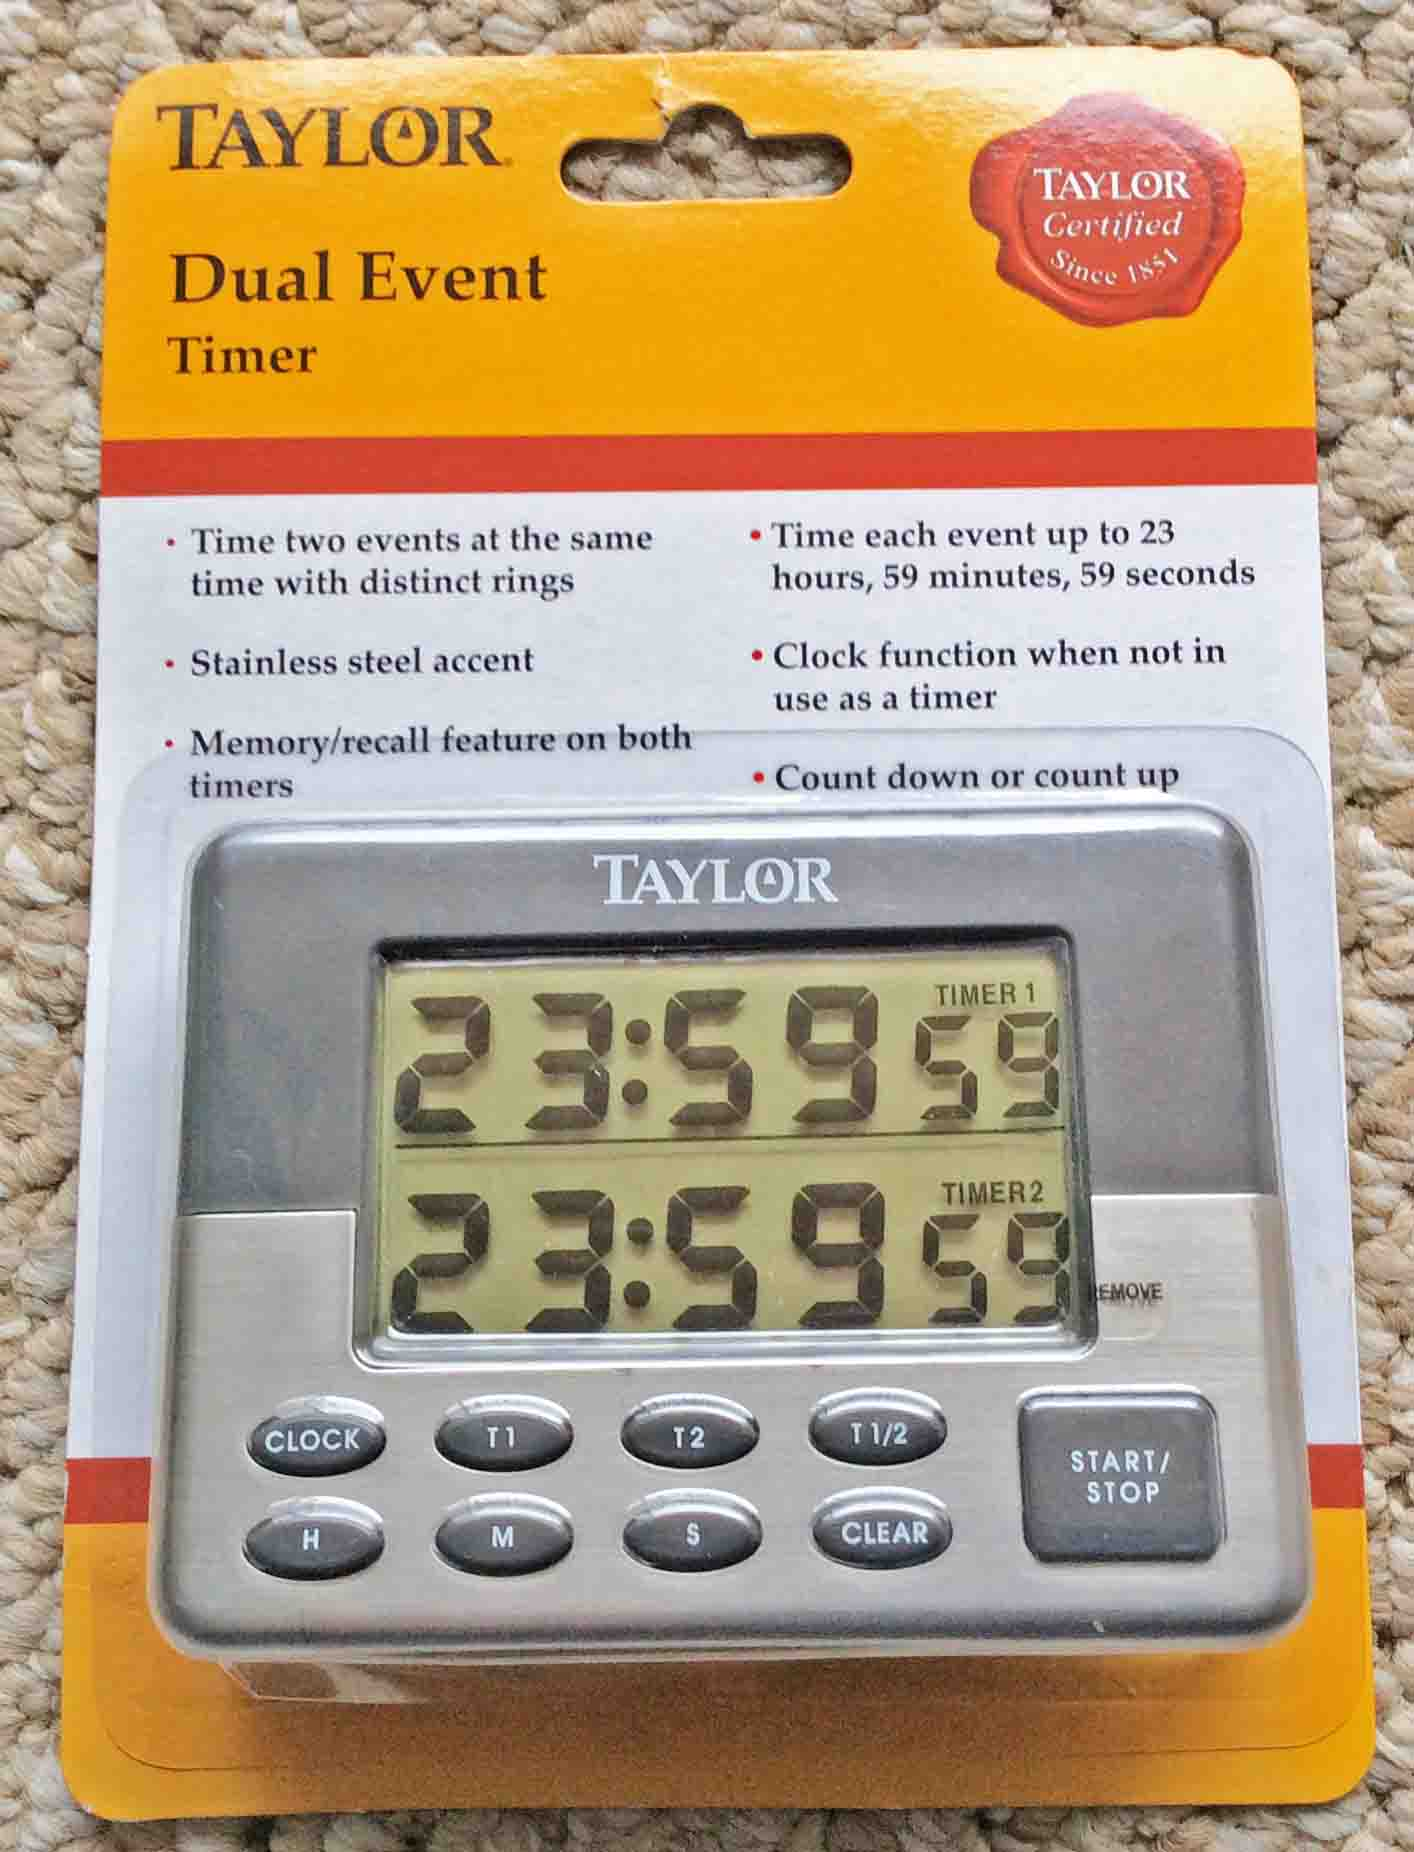 Picture Of The Packaged Taylor Dual Event Count Up And Count Down Timer